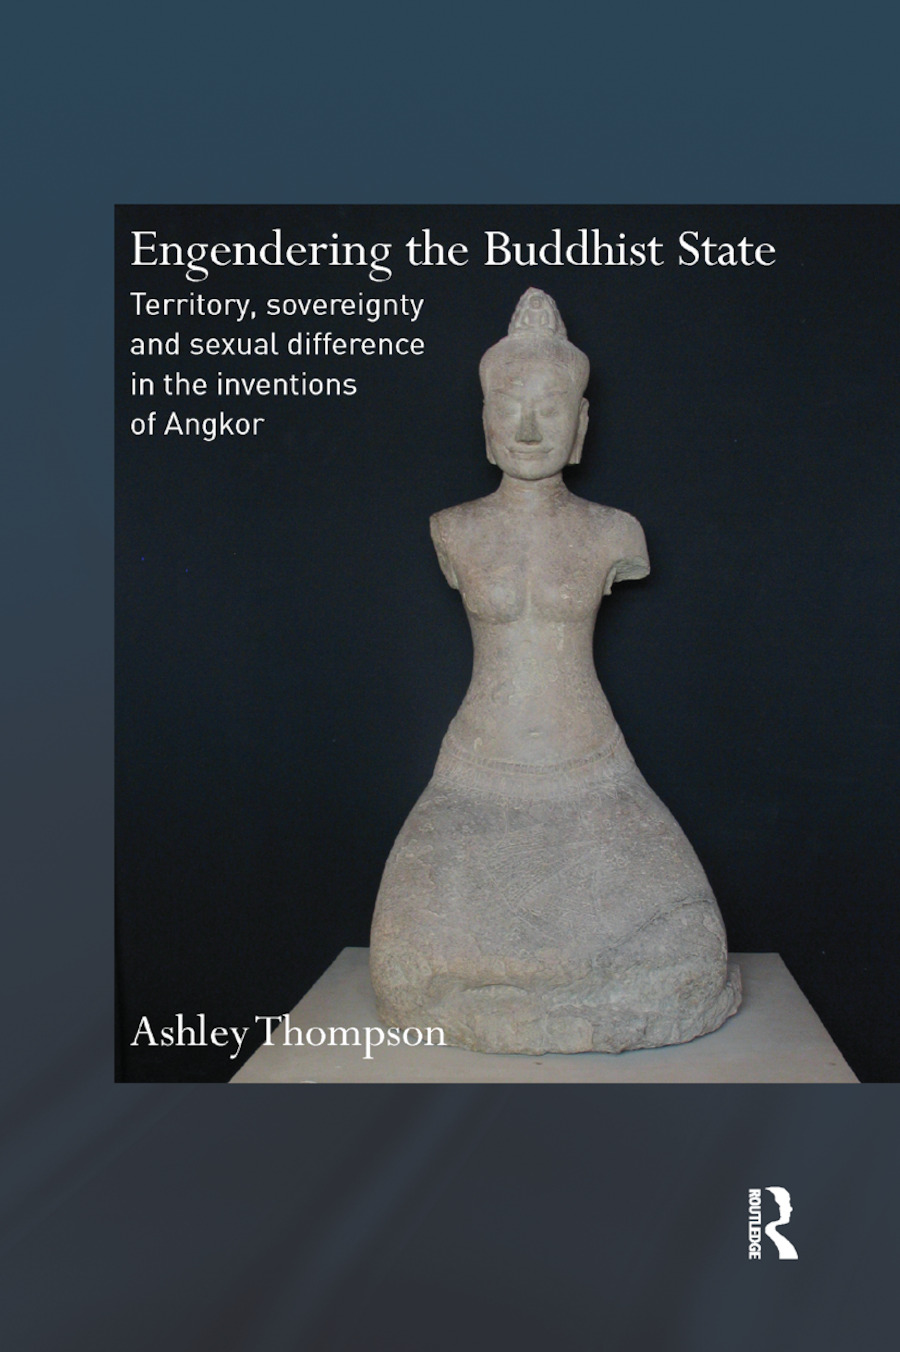 Engendering the Buddhist State: Territory, Sovereignty and Sexual Difference in the Inventions of Angkor book cover